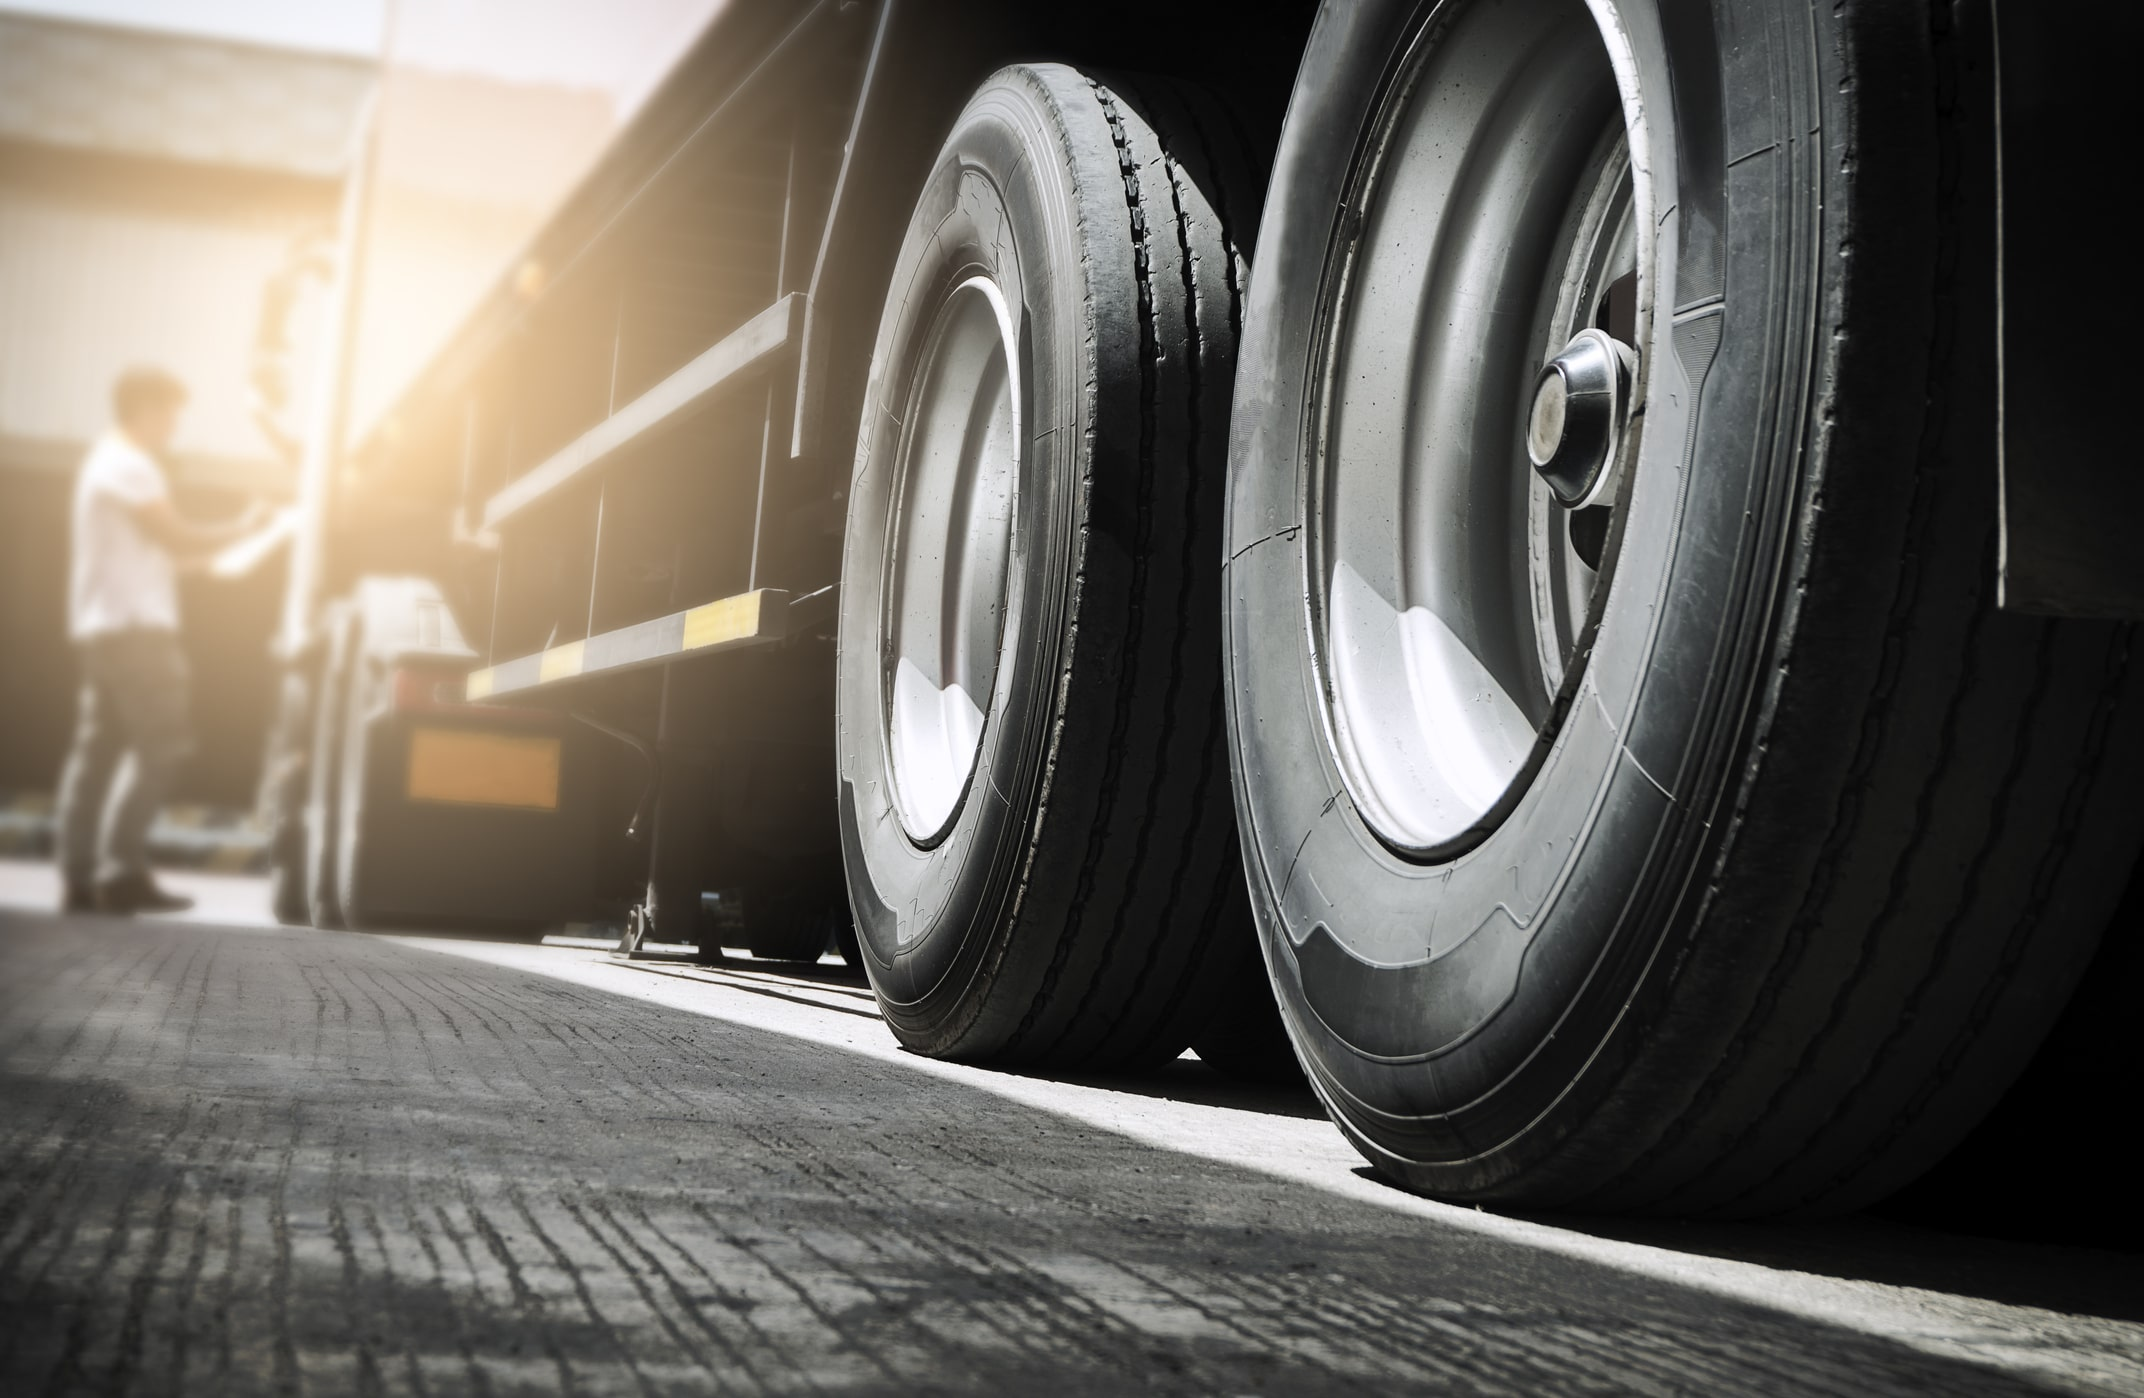 Recovering Damages After a Truck Accident